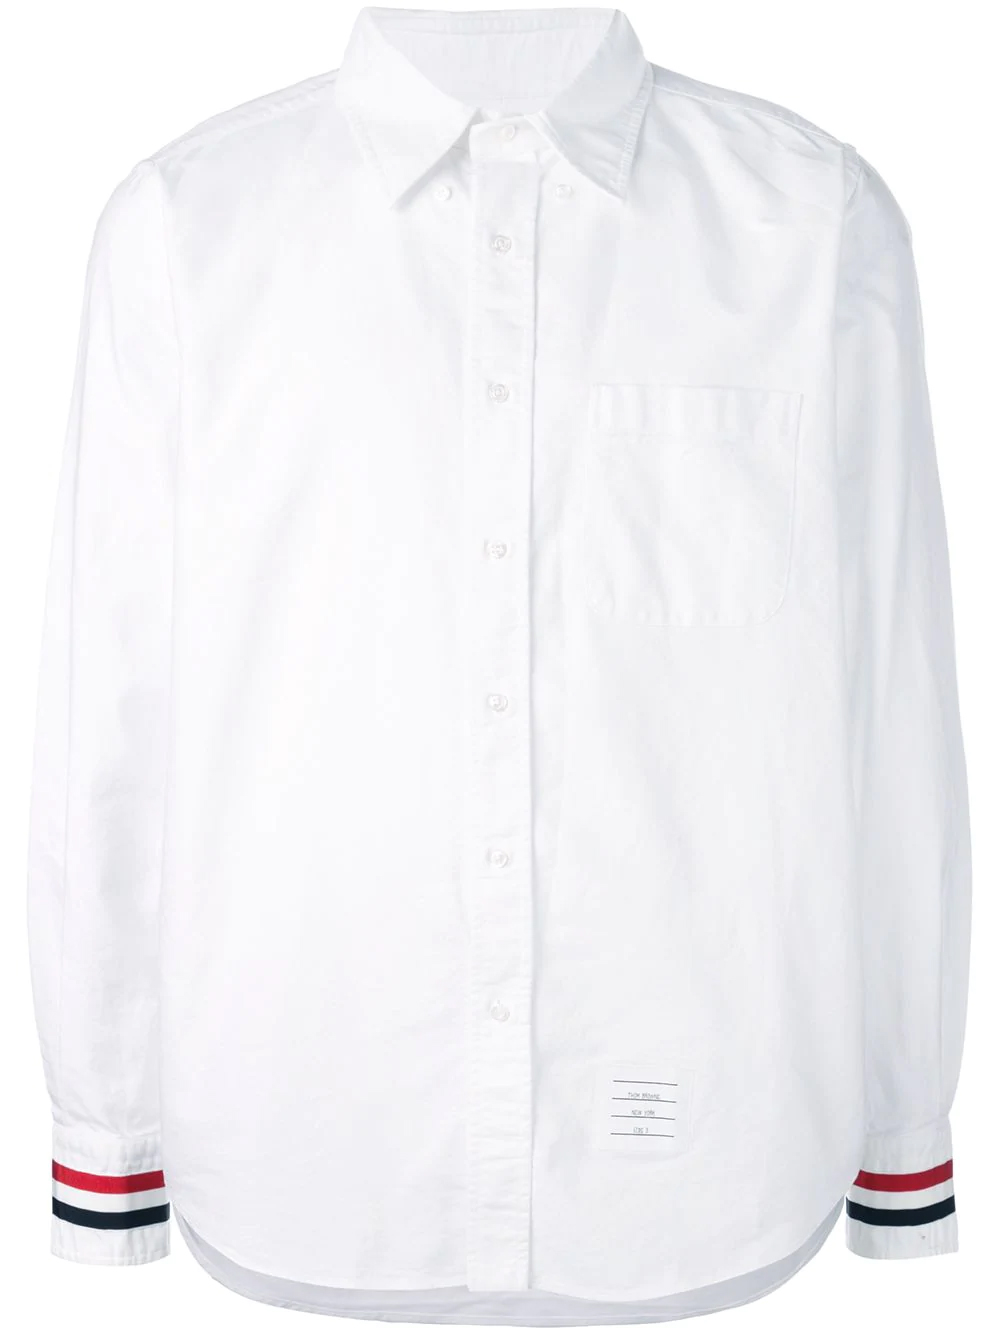 THOM BROWNE OXFORD SHIRT WHITE